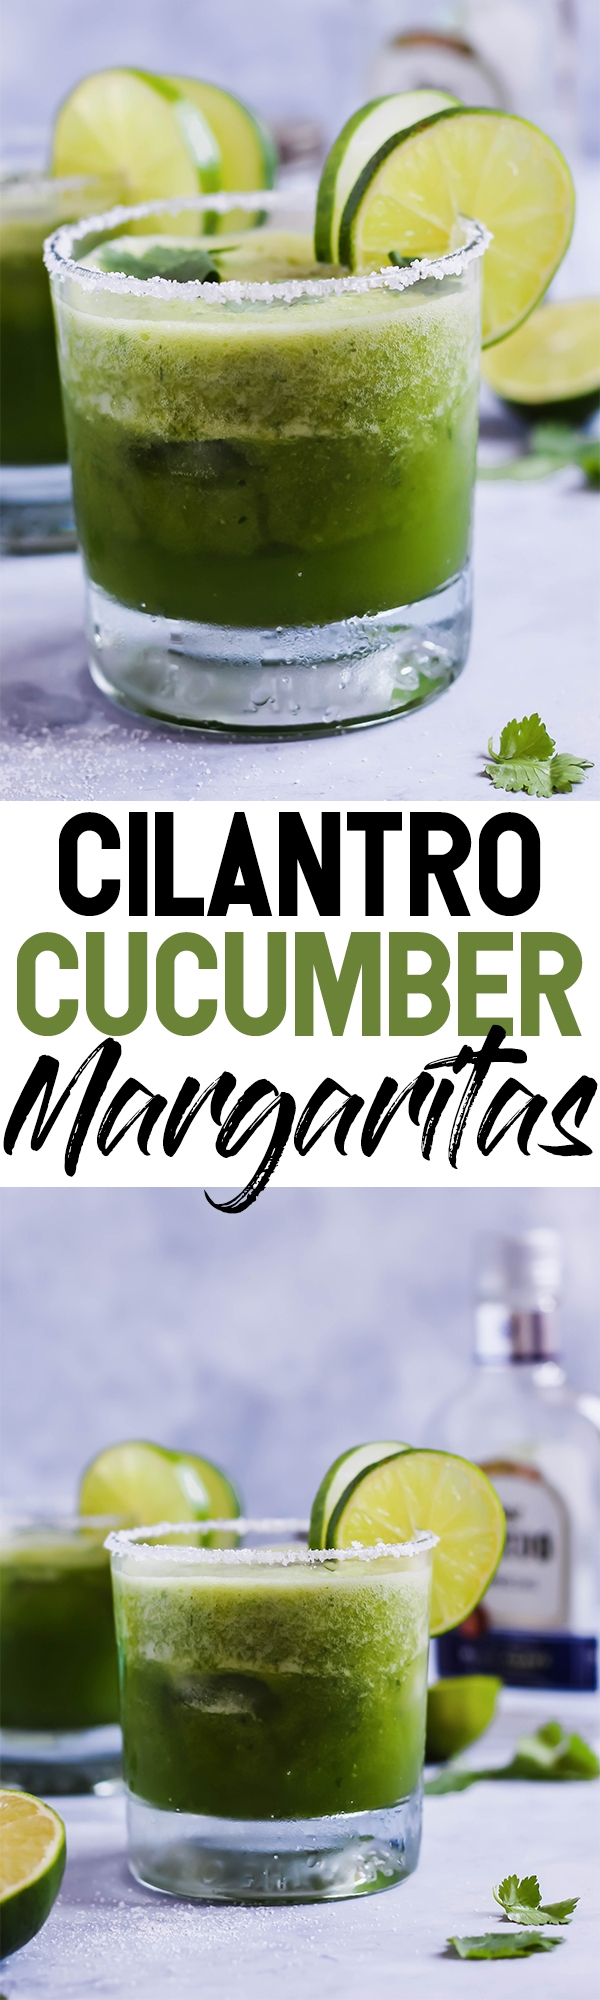 These Cilantro Cucumber Margaritas are a cool, refreshing twist on this classic cocktail! The cucumber is blended in for ultimate flavor. These pair perfectly with chips & salsa!